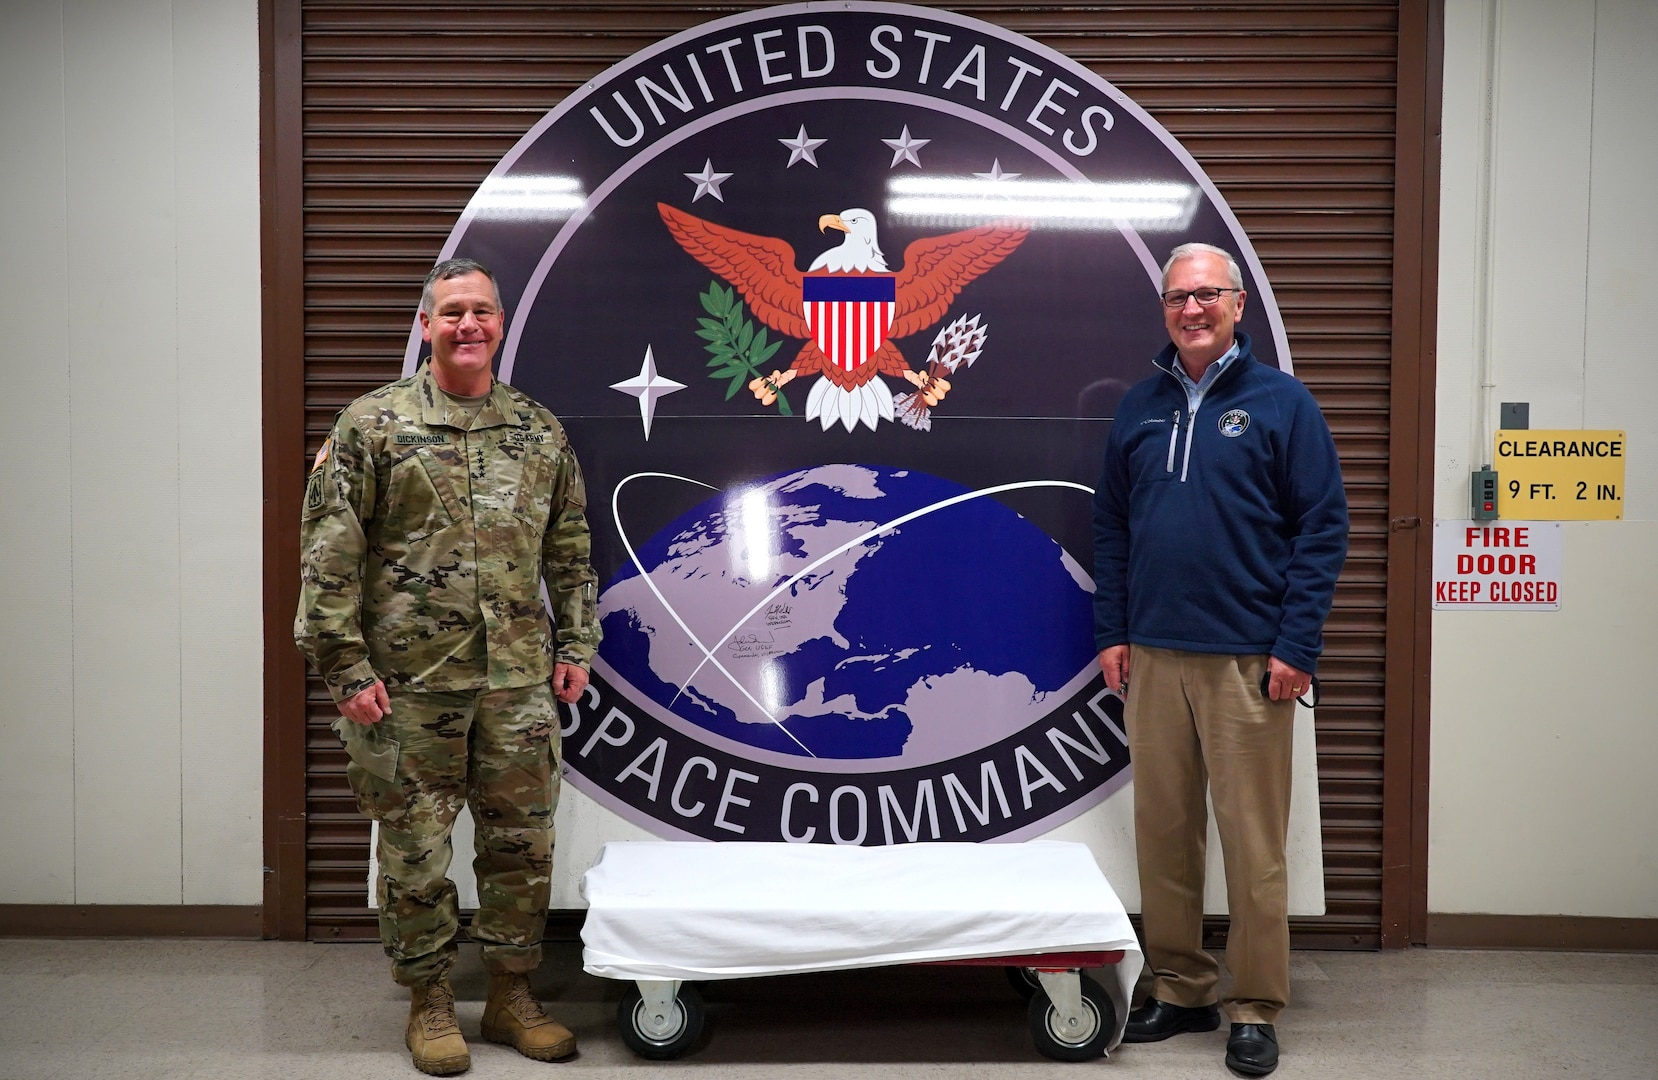 A circular U.S. Space Command seal stands nearly seven feet tall and wide between two men who smile for a photo beside it.